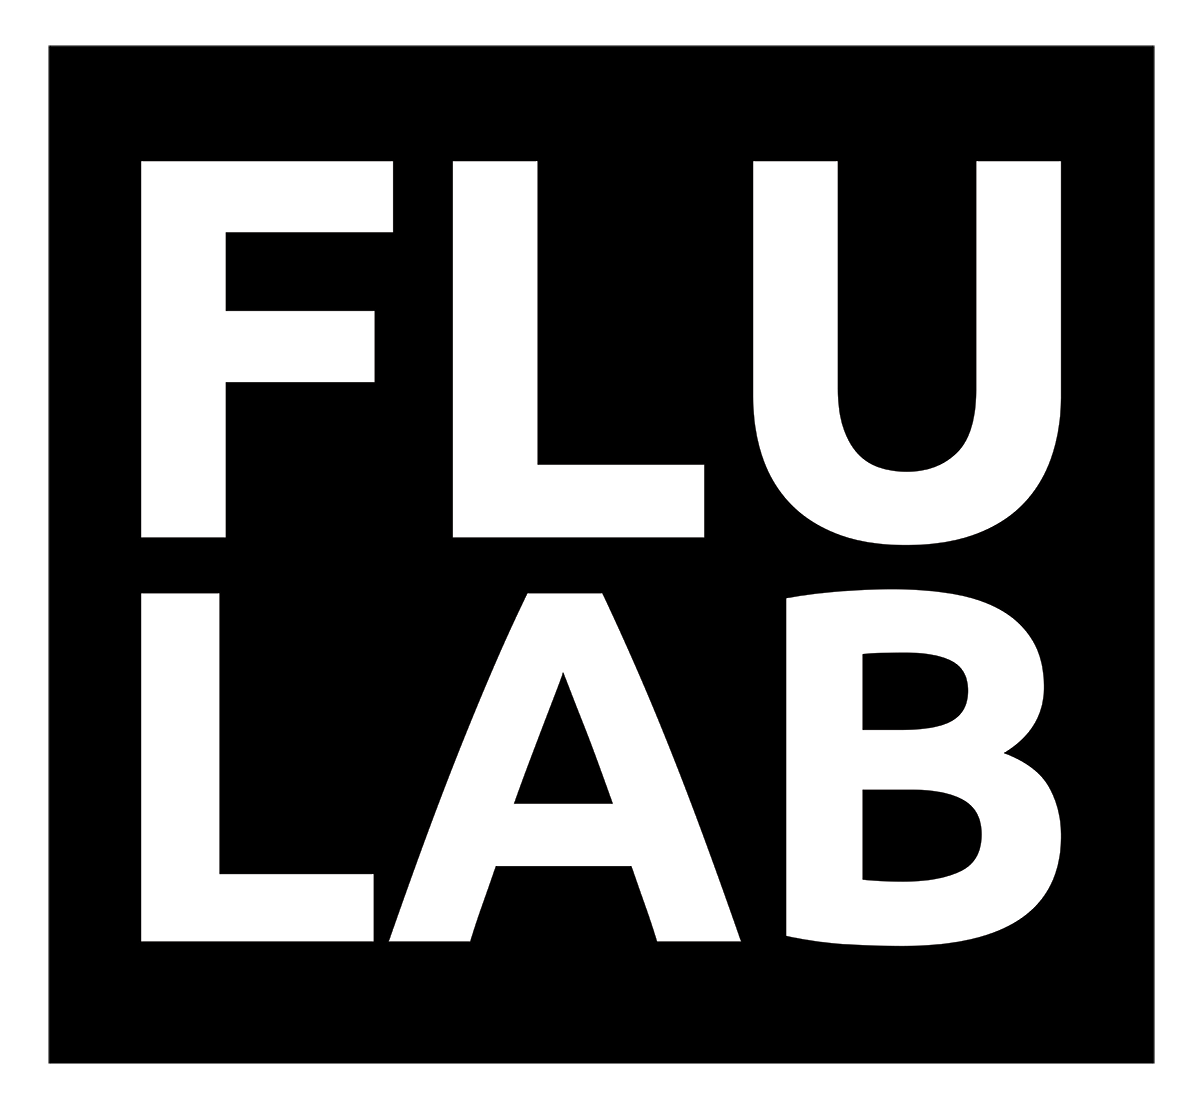 Flu_Lab_logo.original